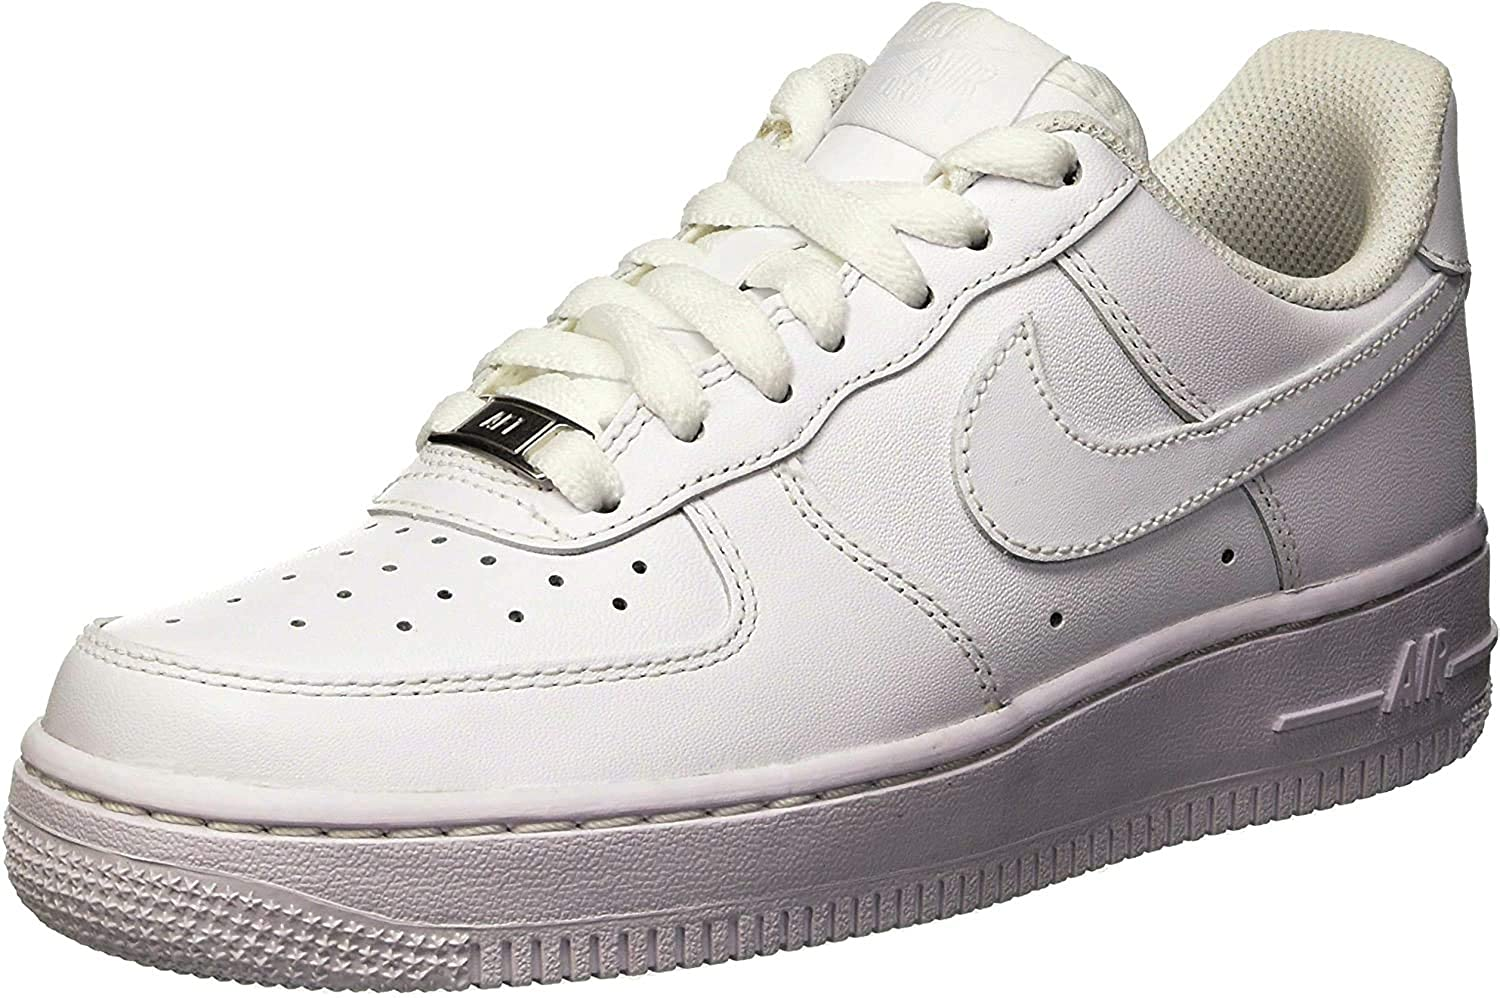 Nike Damen WMNS AIR Force 1 07 Sneaker, weiß, 37.5 EU